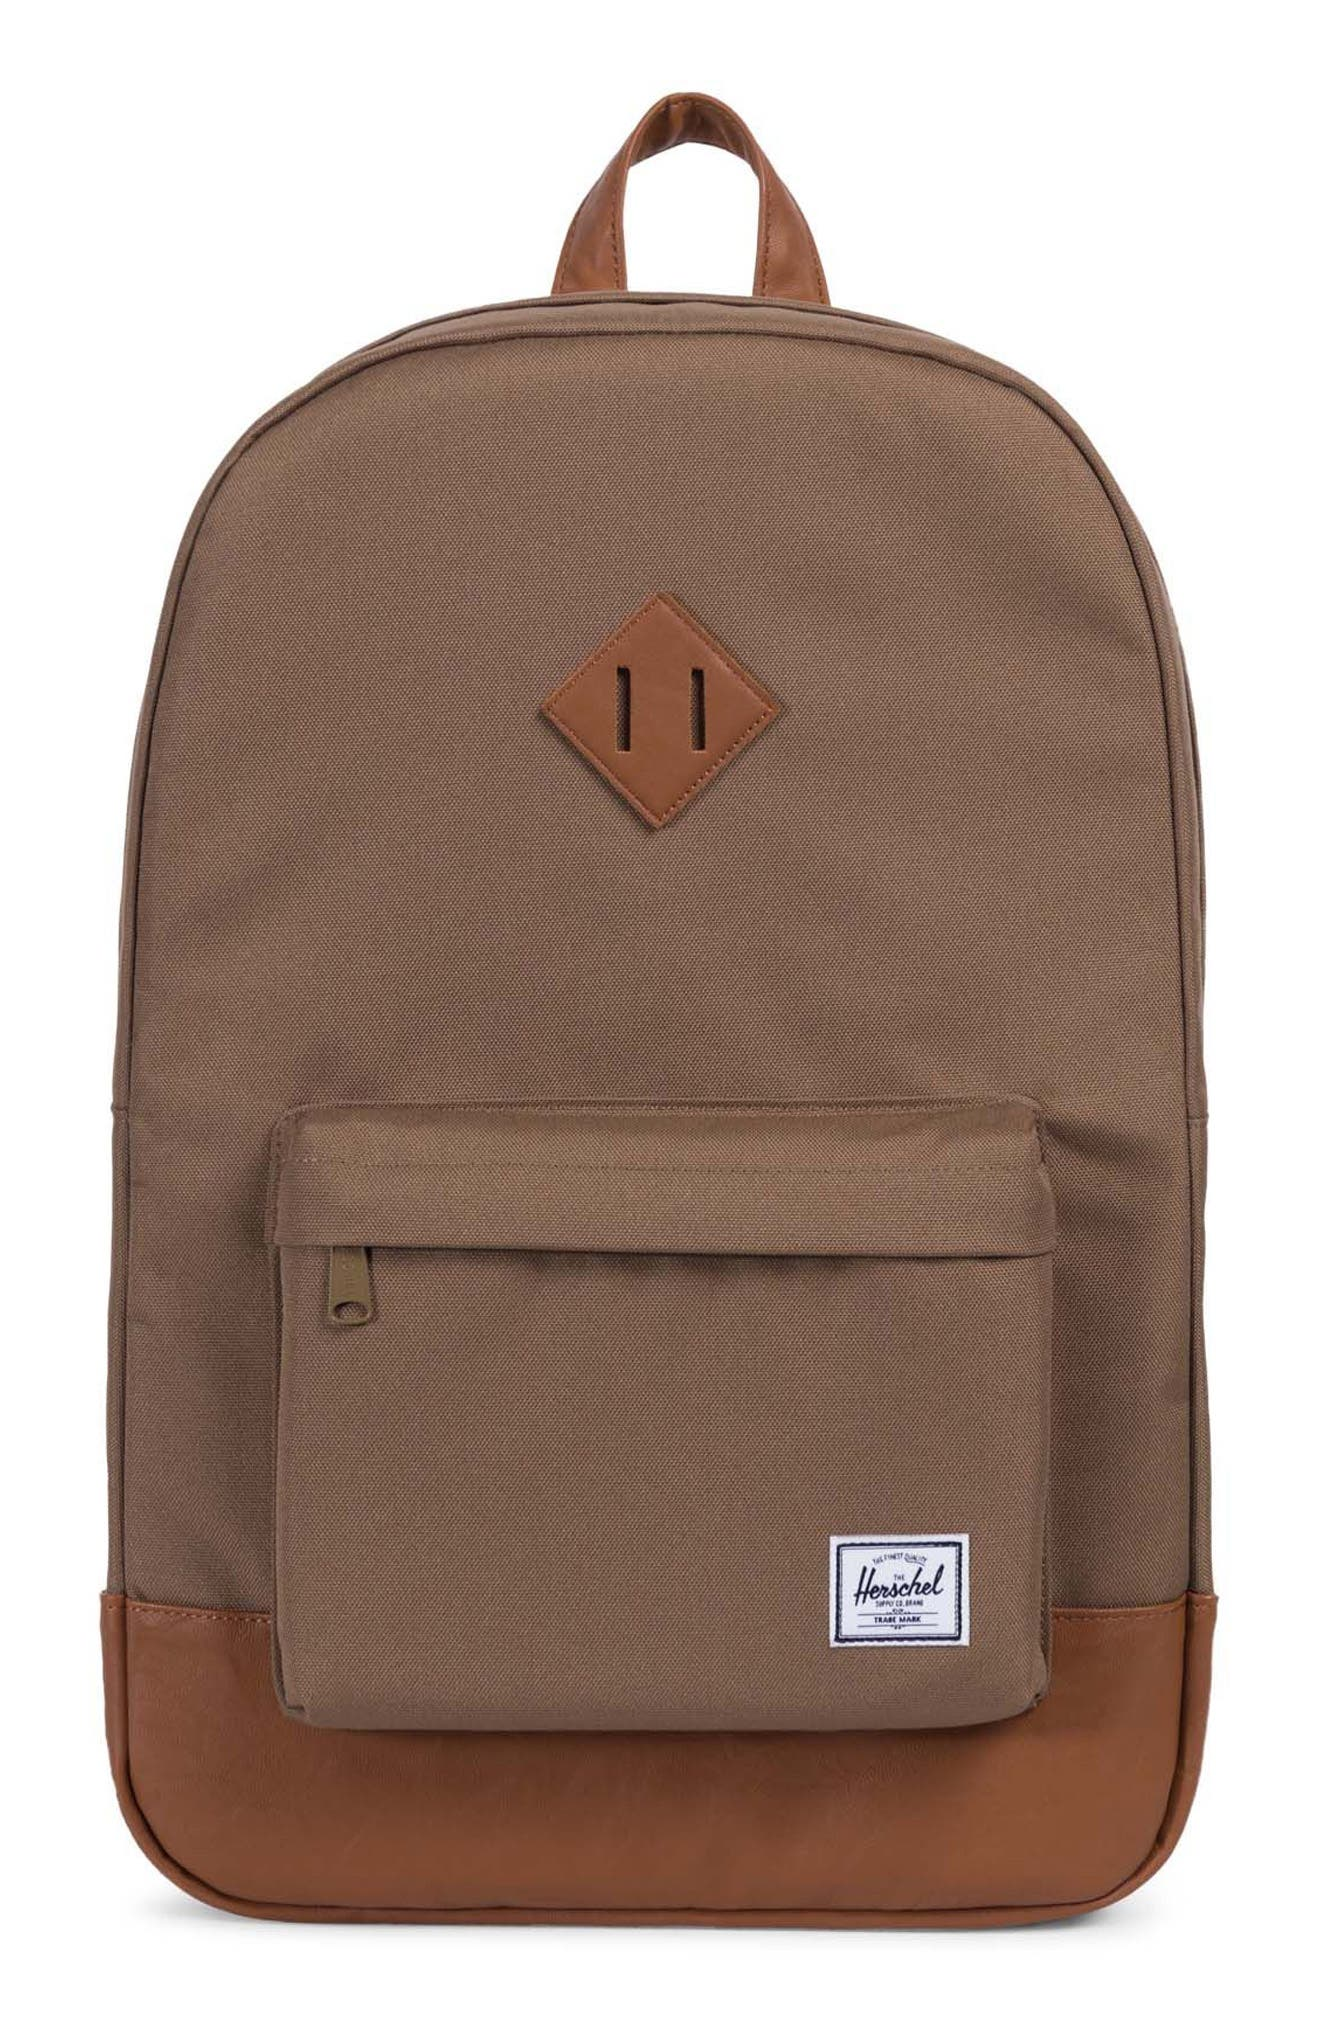 Heritage Backpack,                         Main,                         color, Cub/ Tan